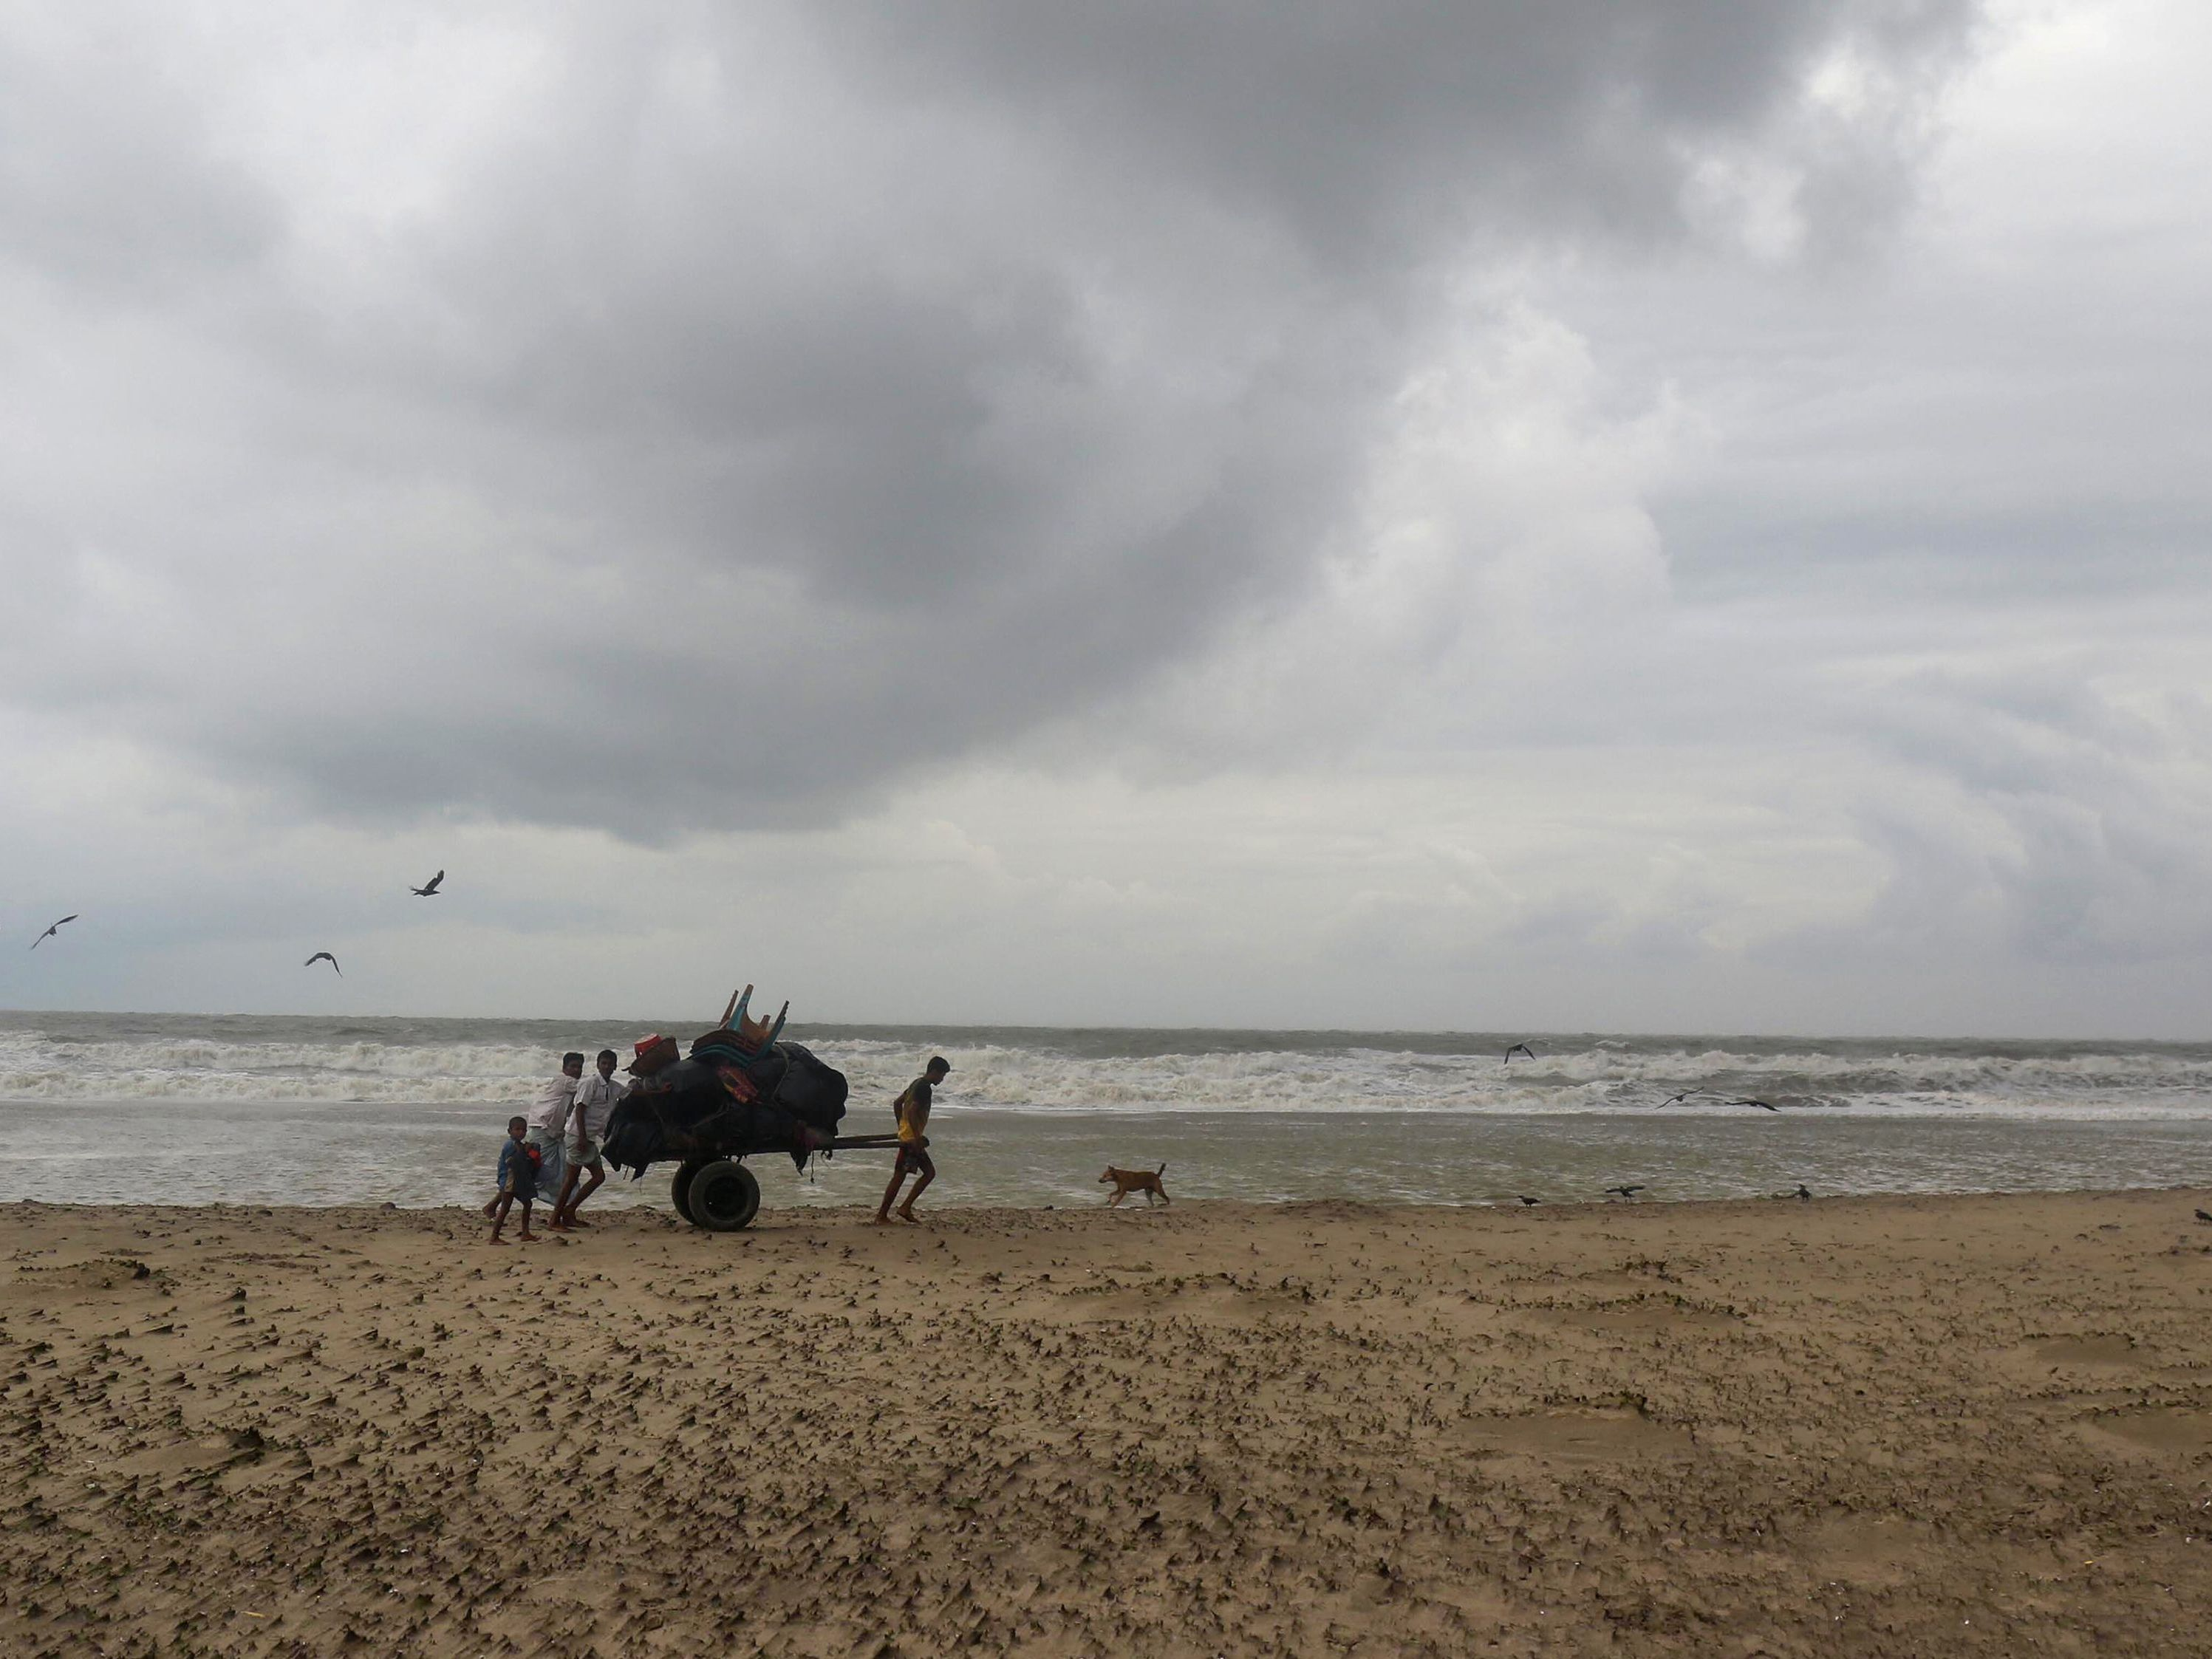 Massive evacuations in Bangladesh as Cyclonic storm MORA likely to intensify